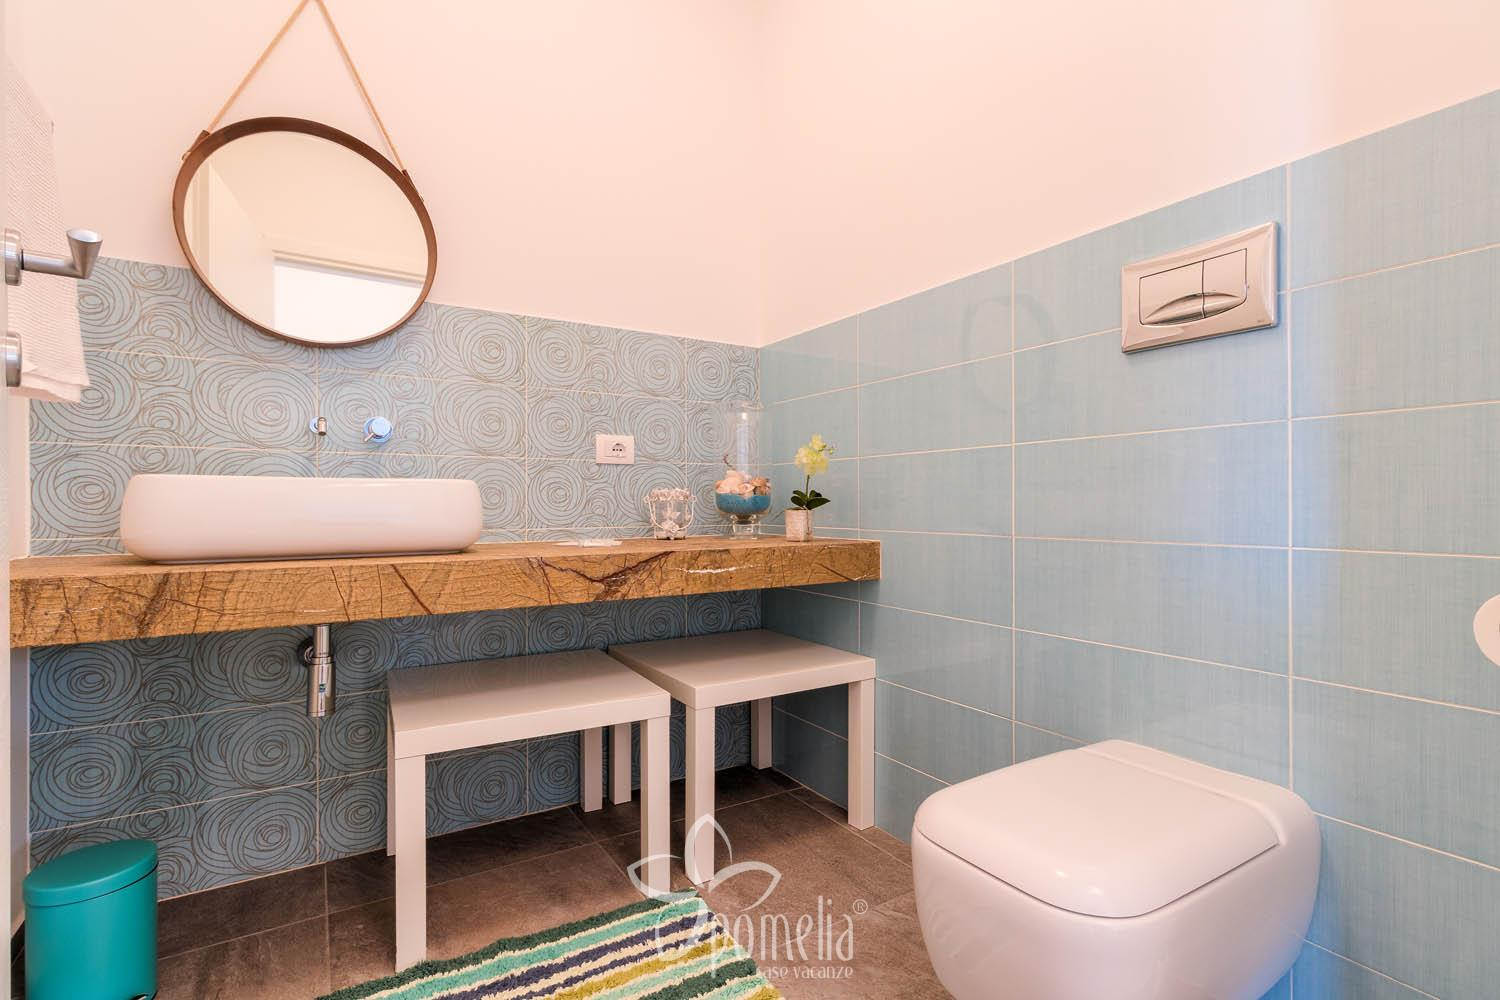 Dafne, villa with pool and garden 300 meters from the beach of Caucana - Bathroom